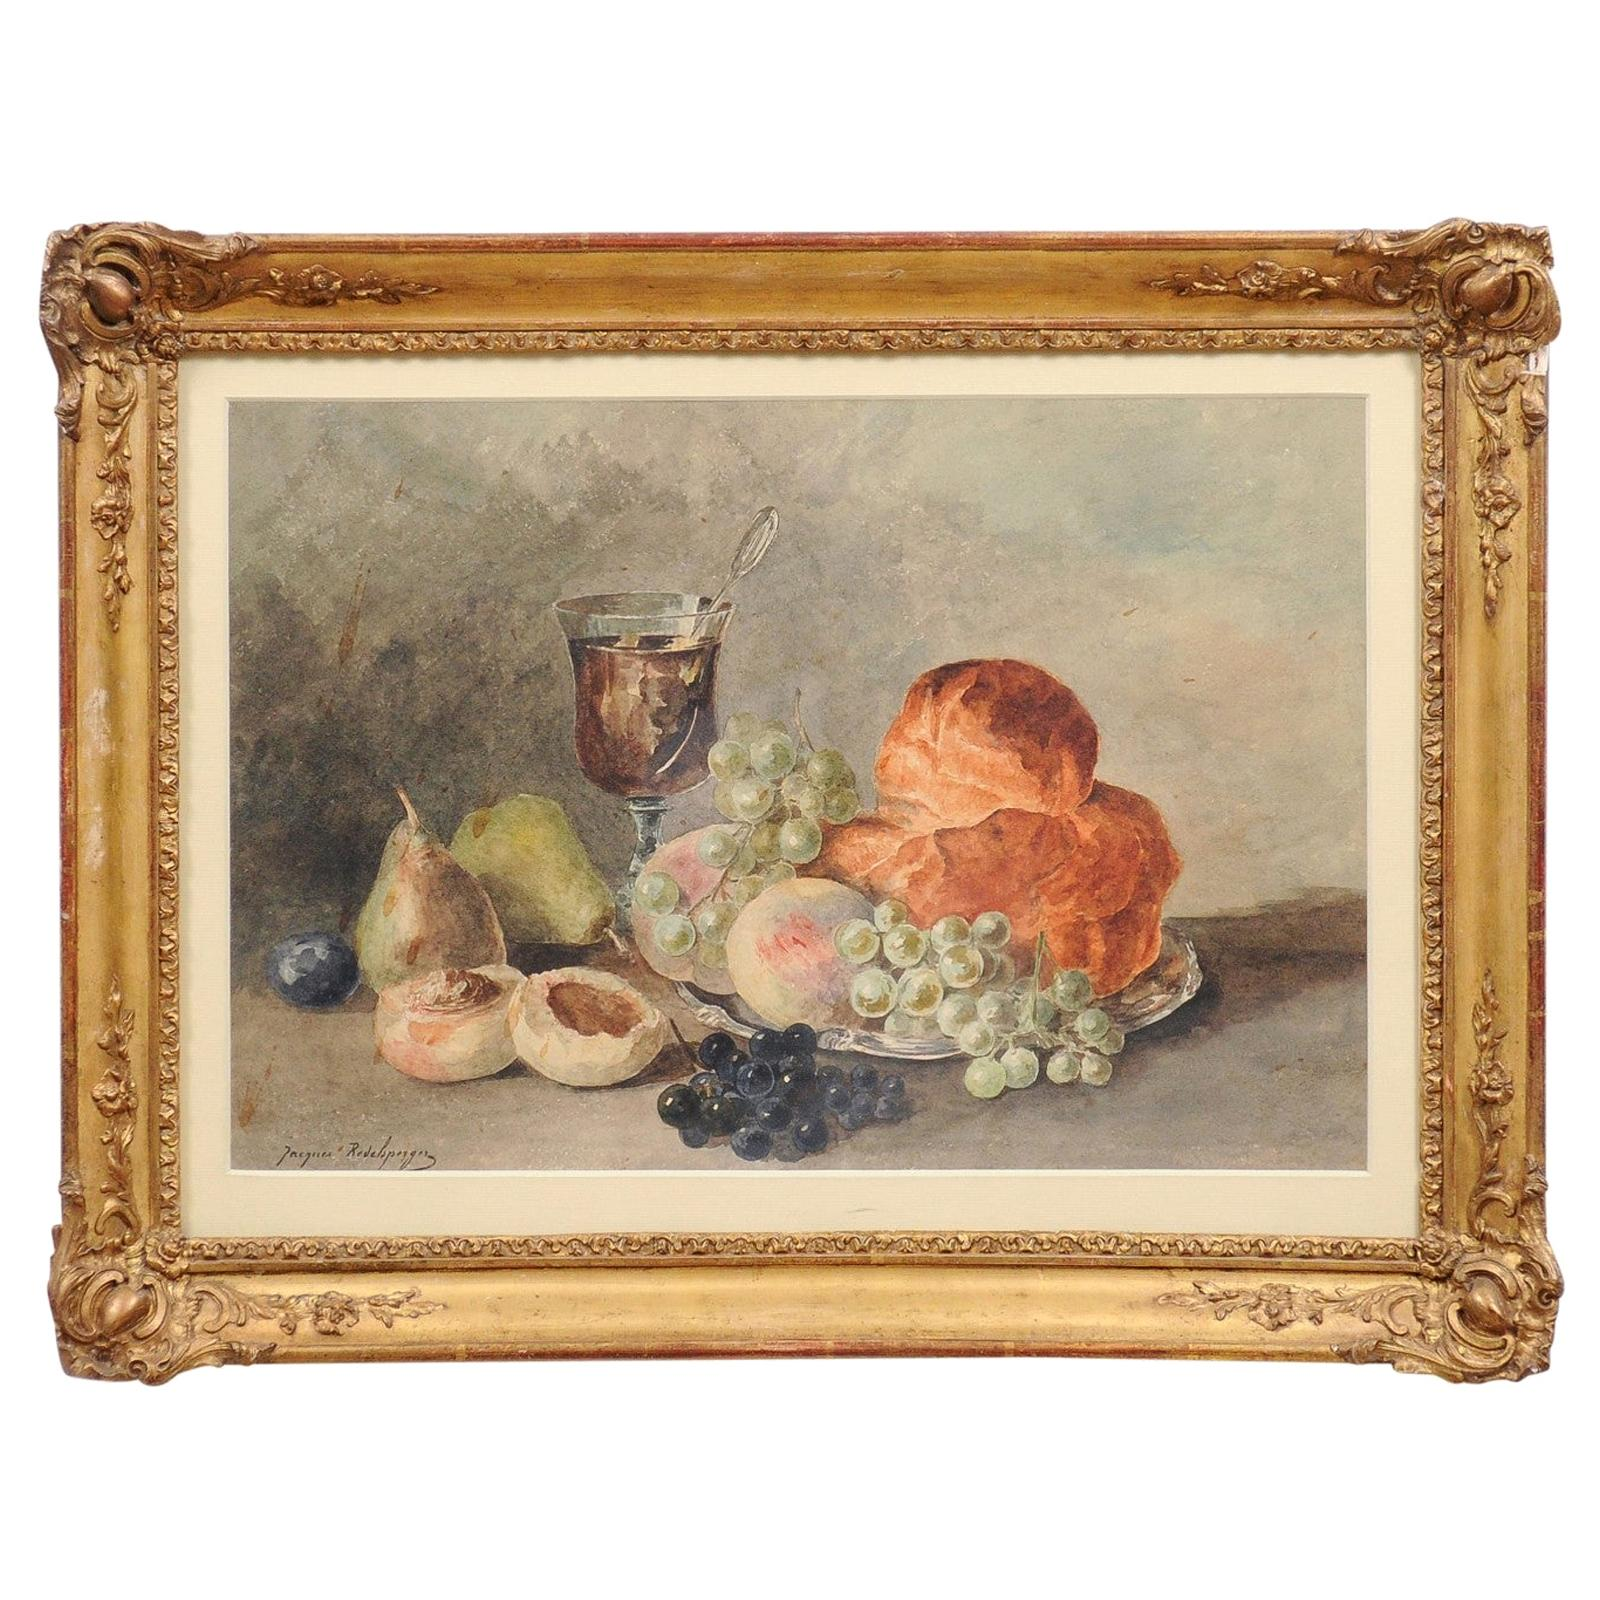 French Framed Still-Life Watercolor Signed Jacques Redelsperger, circa 1887